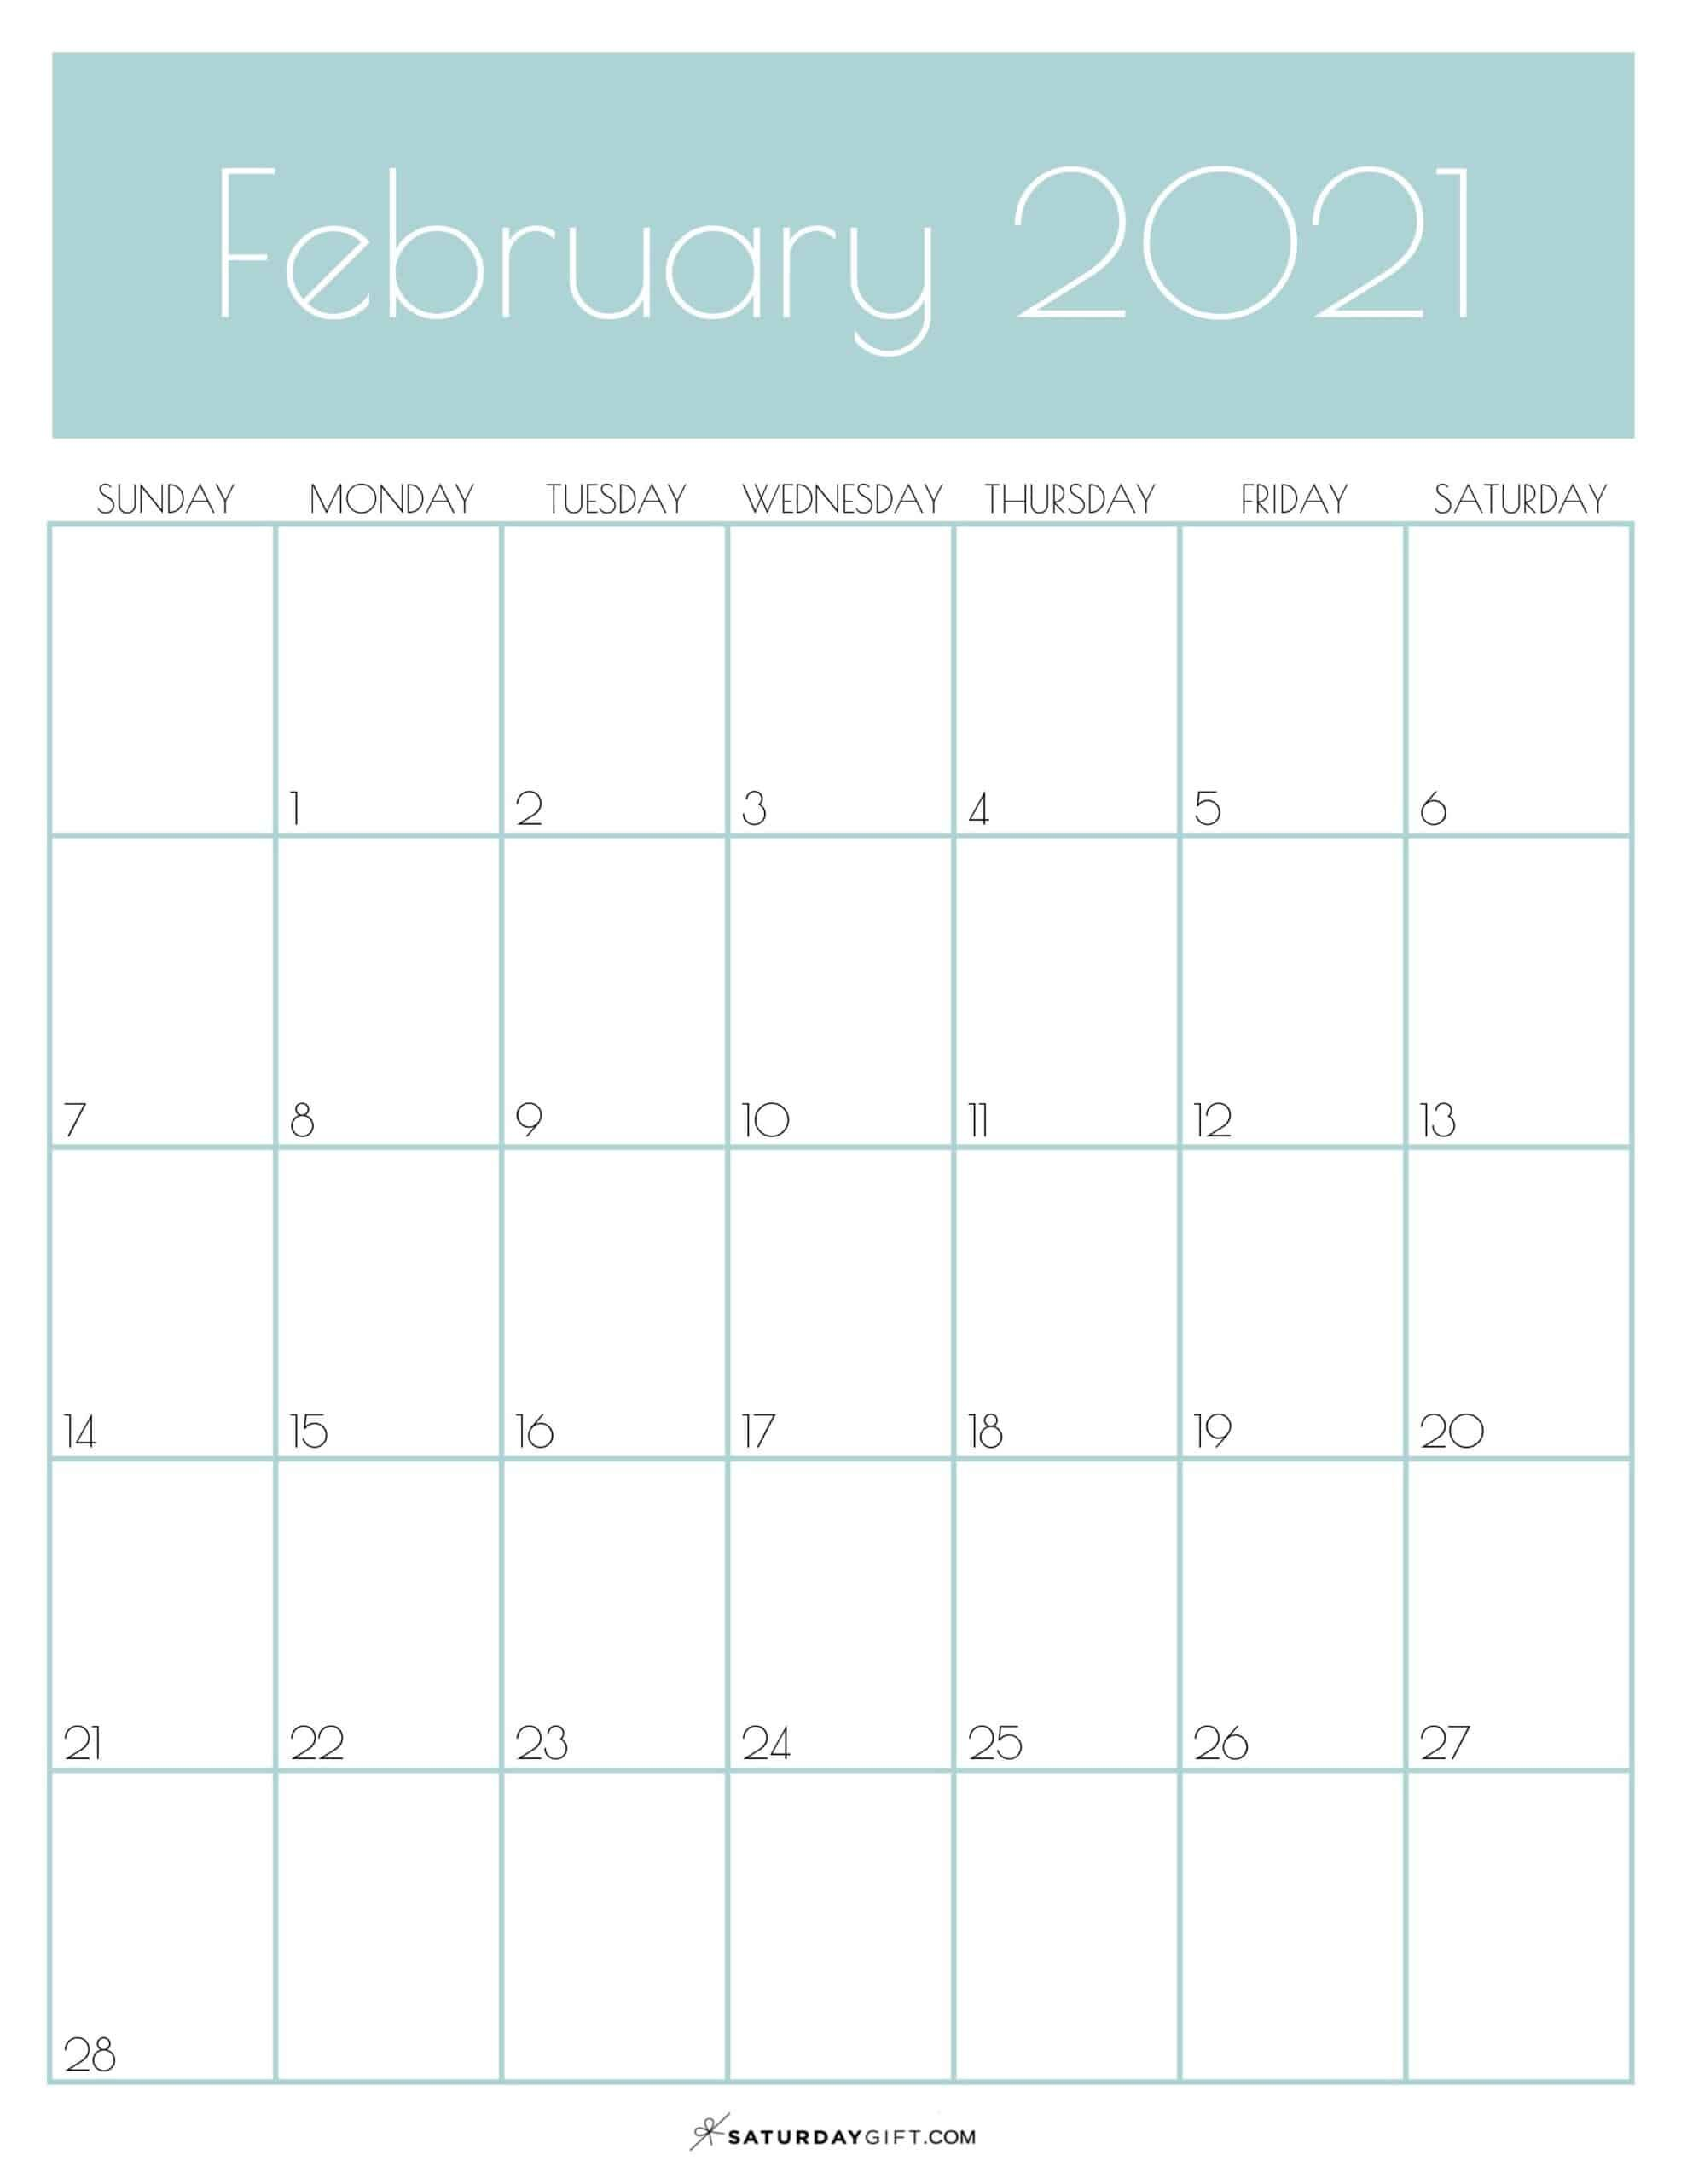 Cute Free Printable February 2021 Calendar Saturdaygift In 2020 Calendar Printables 2021 Calendar Vertical Calendar